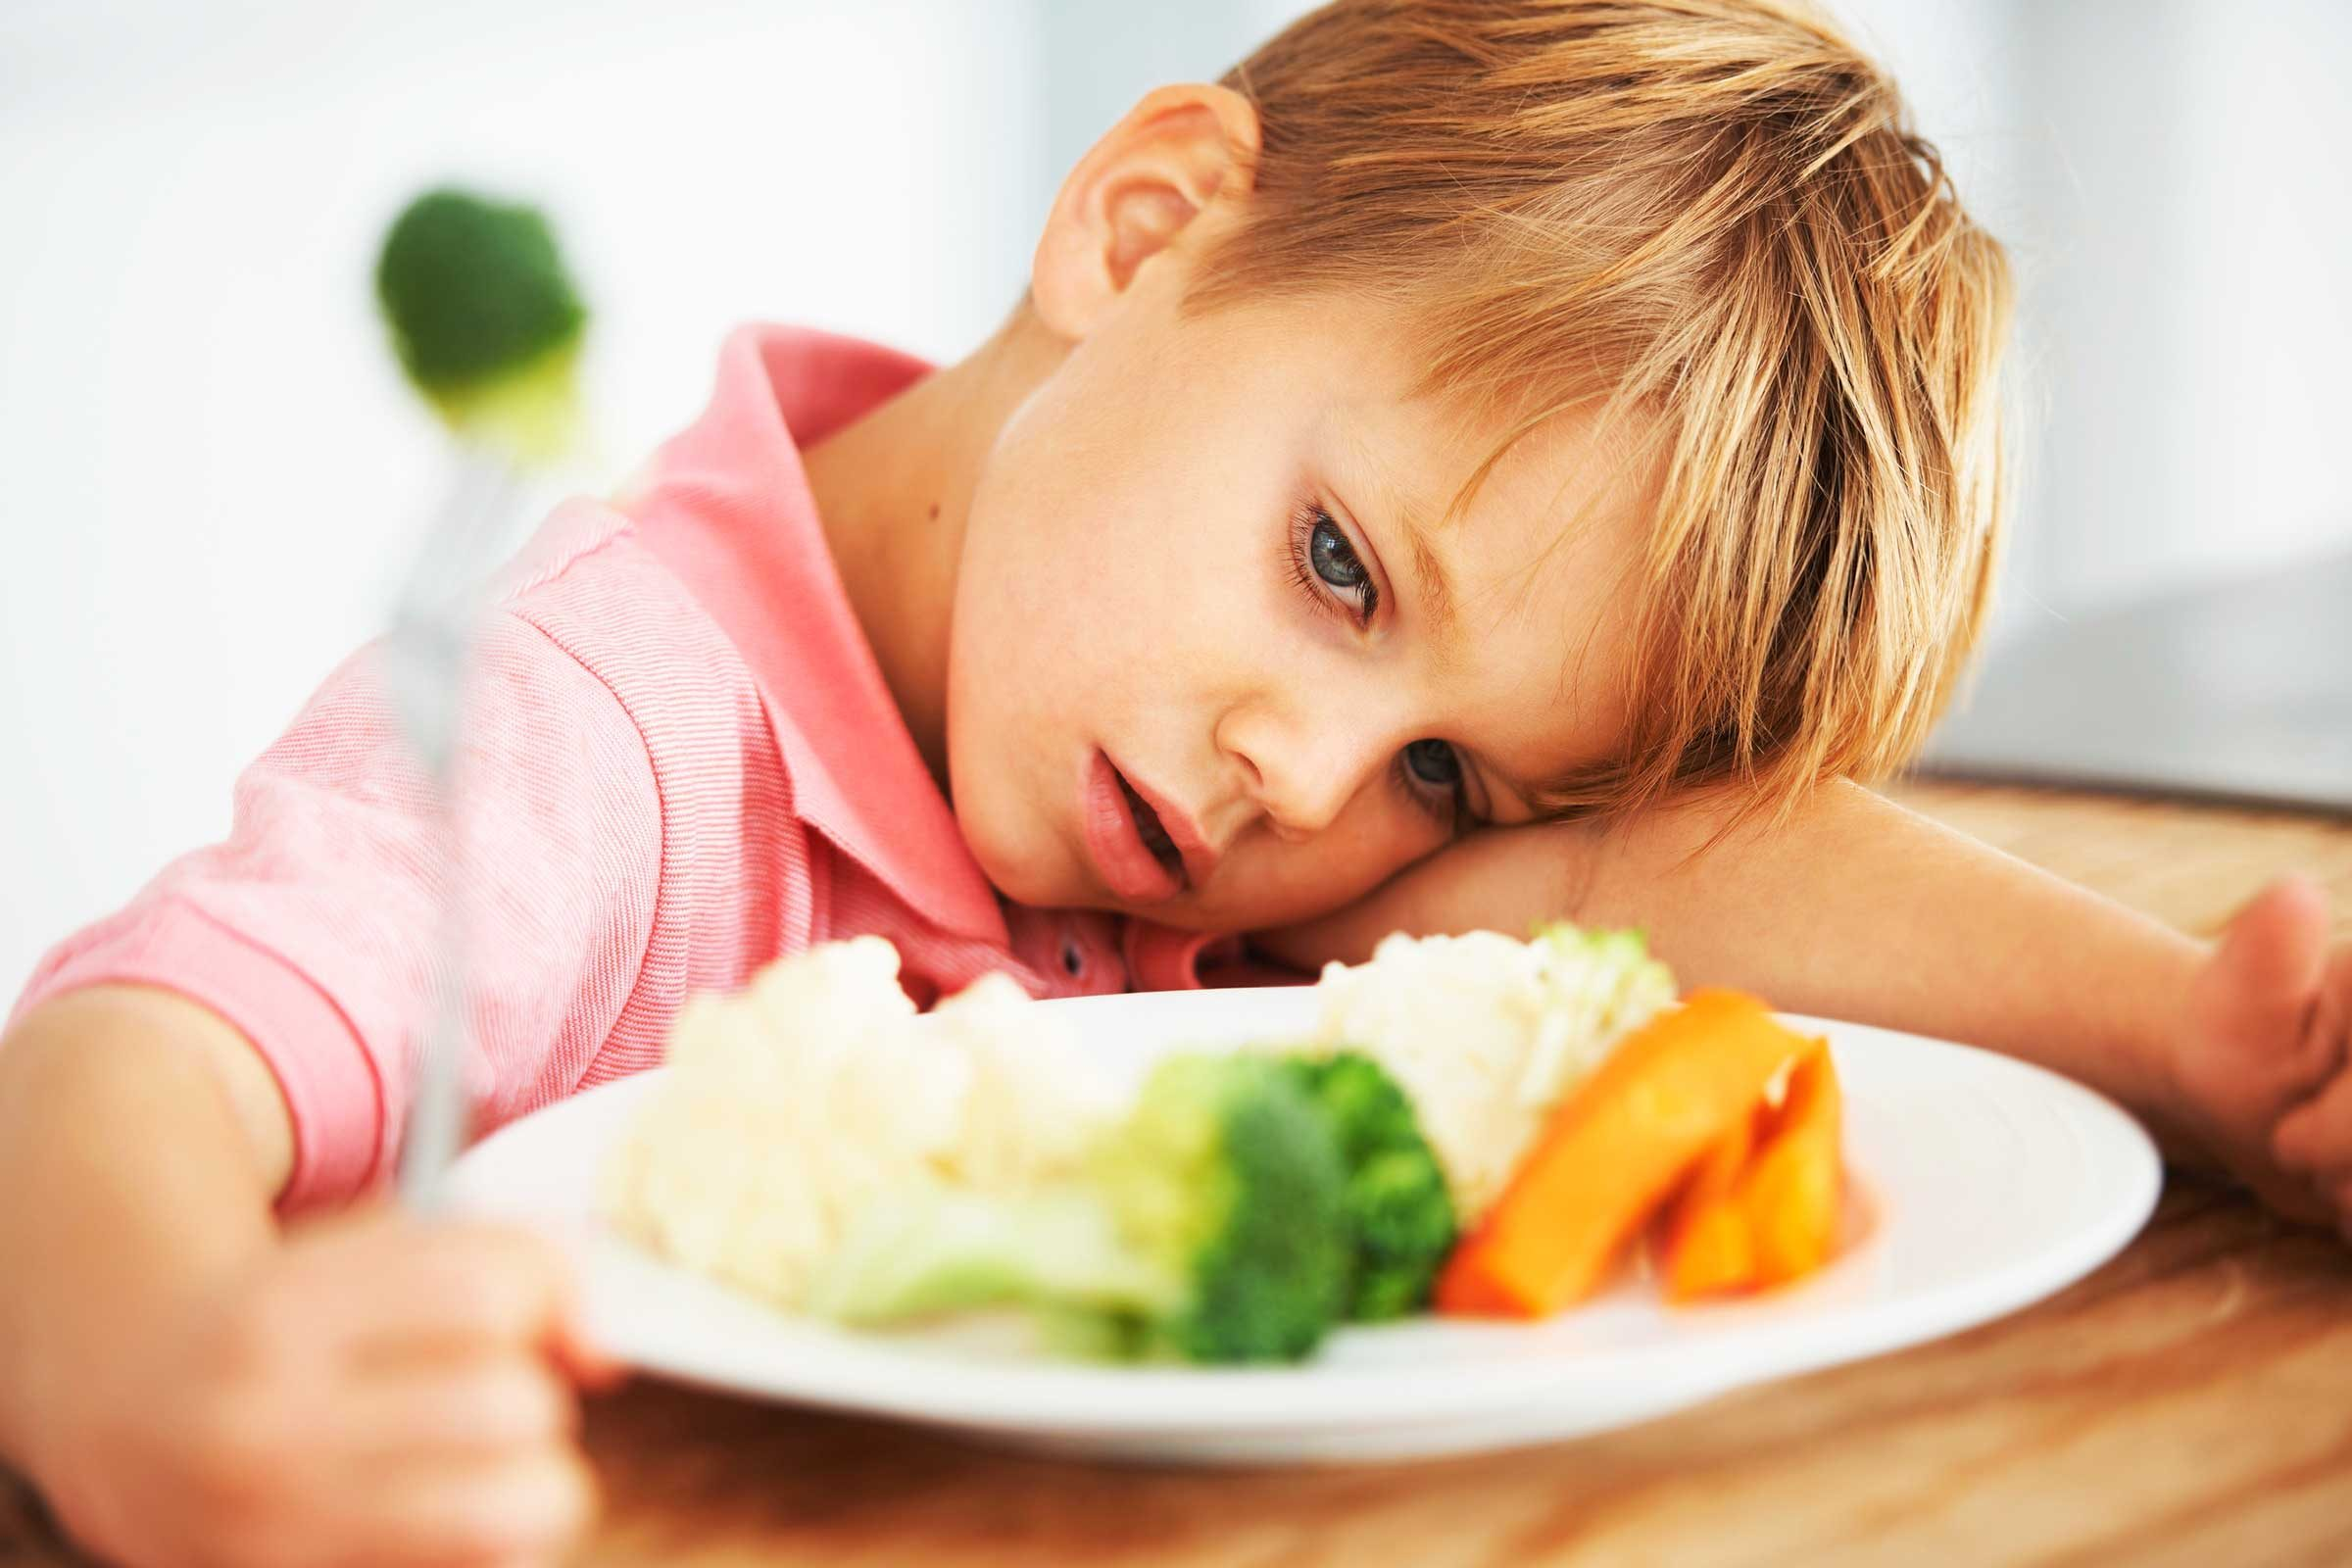 Young boy looking disinterested in the food on his plate